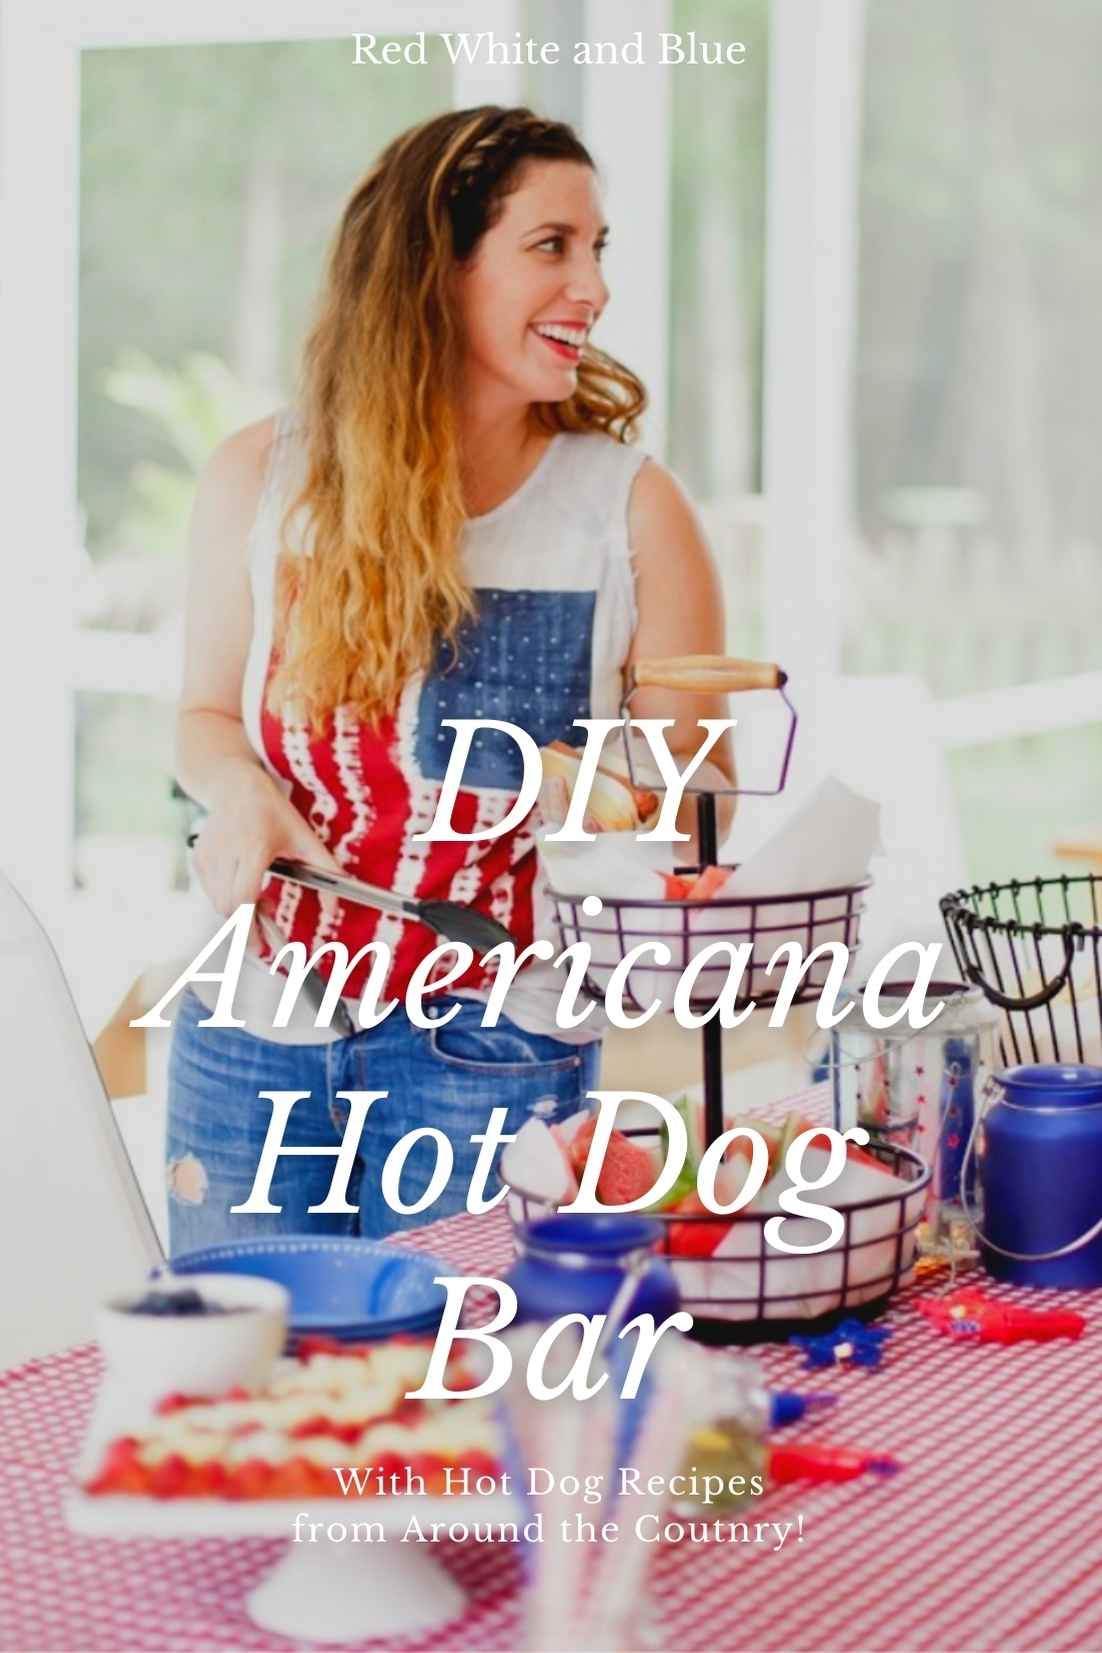 Red White and Blue fun, and a DIY Americana Hot Dog Bar! Set up toppings and flavors for hot dog recipes from around the U.S. Chicago style, Boston, Detroit, Philly, Carolina hot dog and more! |  Hot Dog Bar by popular Florida lifestyle blog, Fresh Mommy Blog: Pinterest image of a woman wearing an American flag tank top and assembling a hot dog at a table with a red and white check table cloth, tiered black wire serving dish with watermelon slices, white serving plate of hot dogs, and American flag fruit platter.